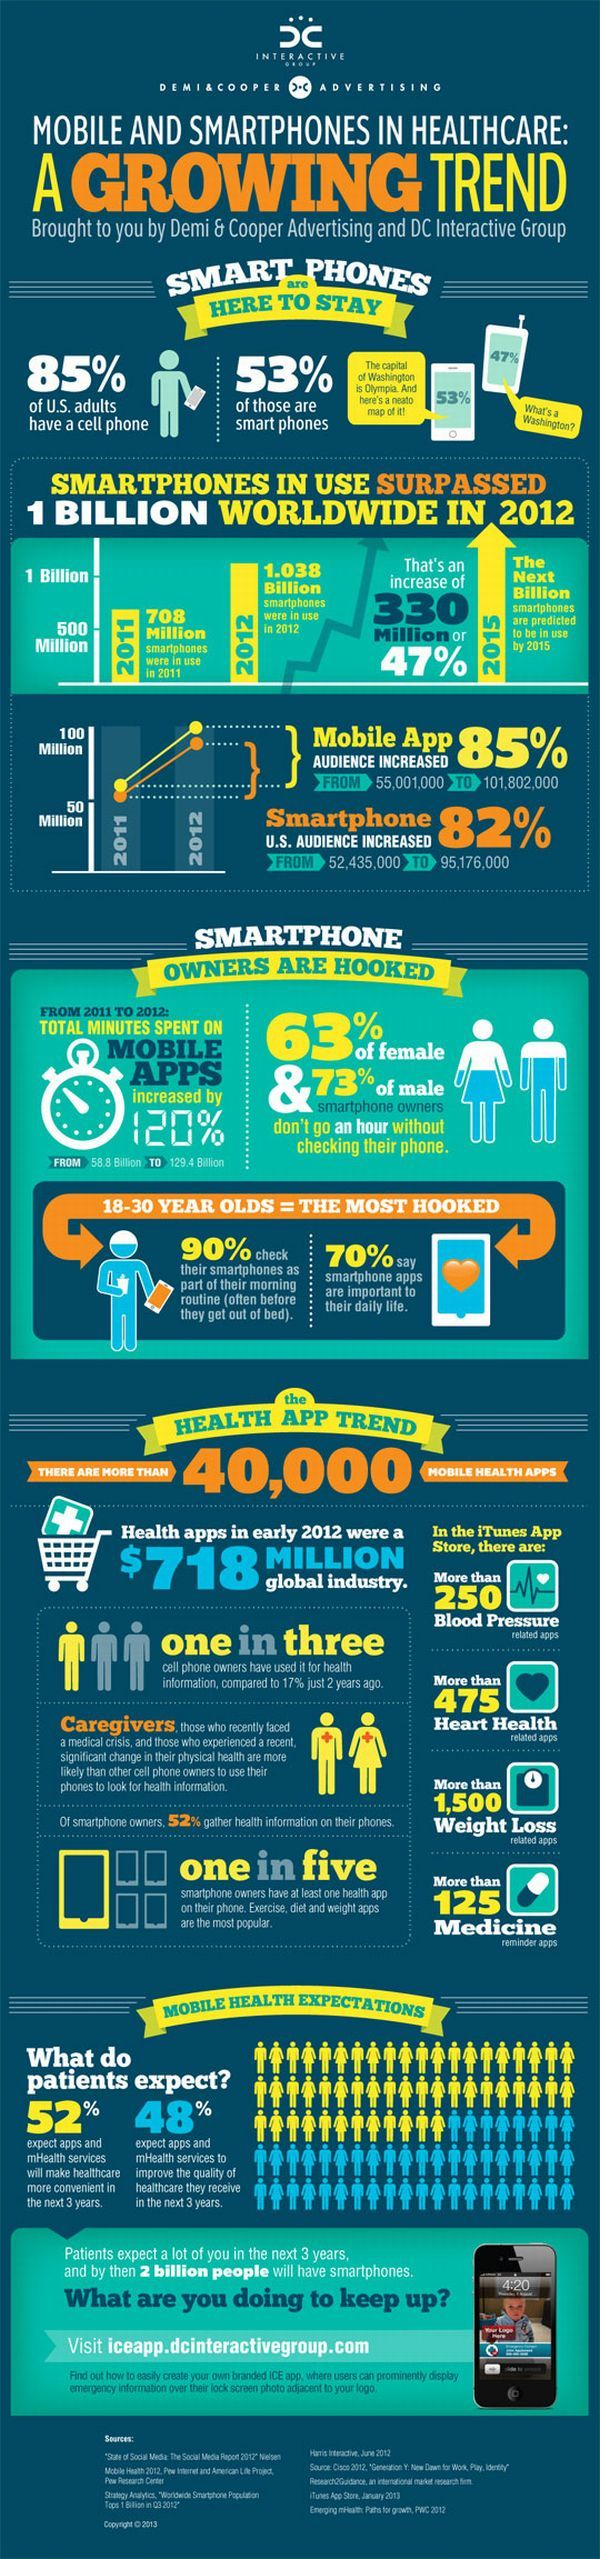 Infographic: Use of health apps to skyrocket